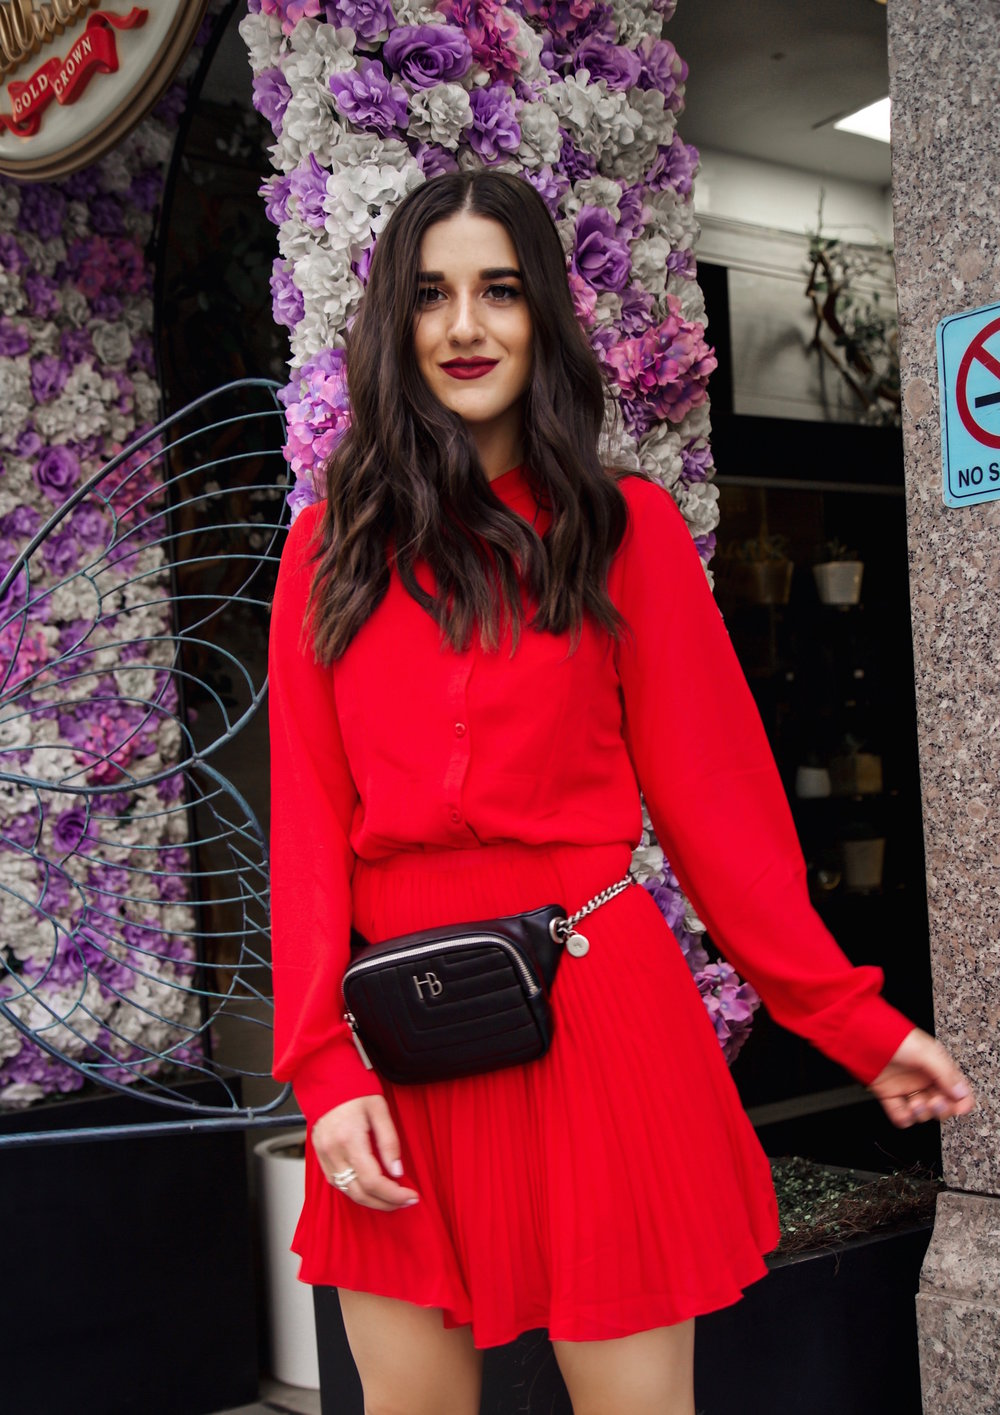 What Do Bloggers Do With All The Free Products They Receive Red Pleated Dress Black Belt Bag Esther Santer Fashion Blog NYC Street Style Blogger Outfit OOTD Trendy ASOS Vince Camuto Braided Sandals Shoes Hair Girl Women Fanny Pack Fall Summer Shopping.jpg